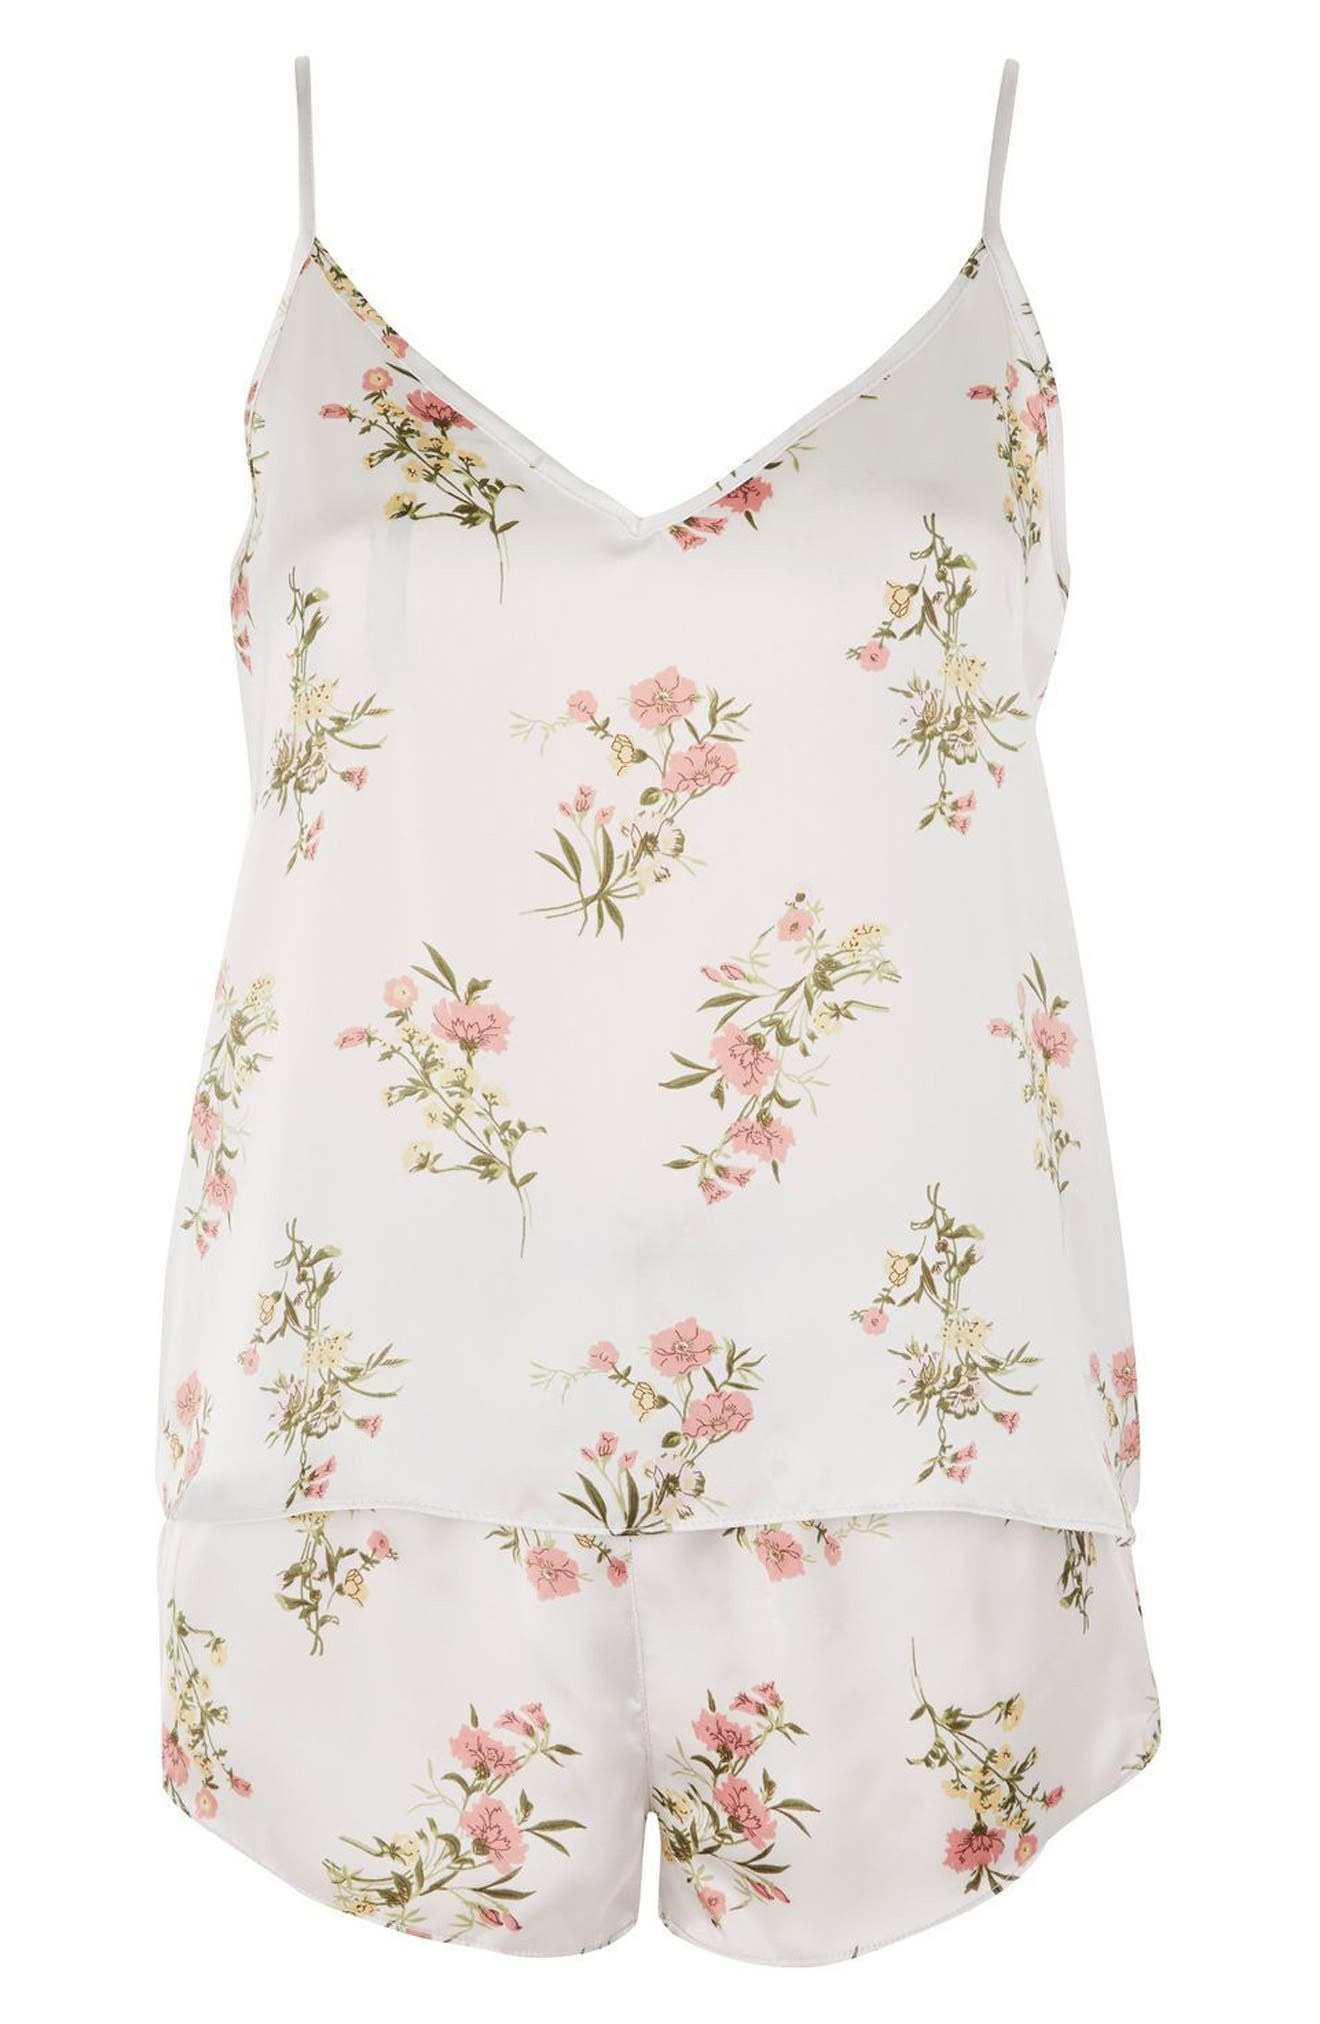 Garden Flower Camisole & Short Pajamas,                             Alternate thumbnail 3, color,                             900